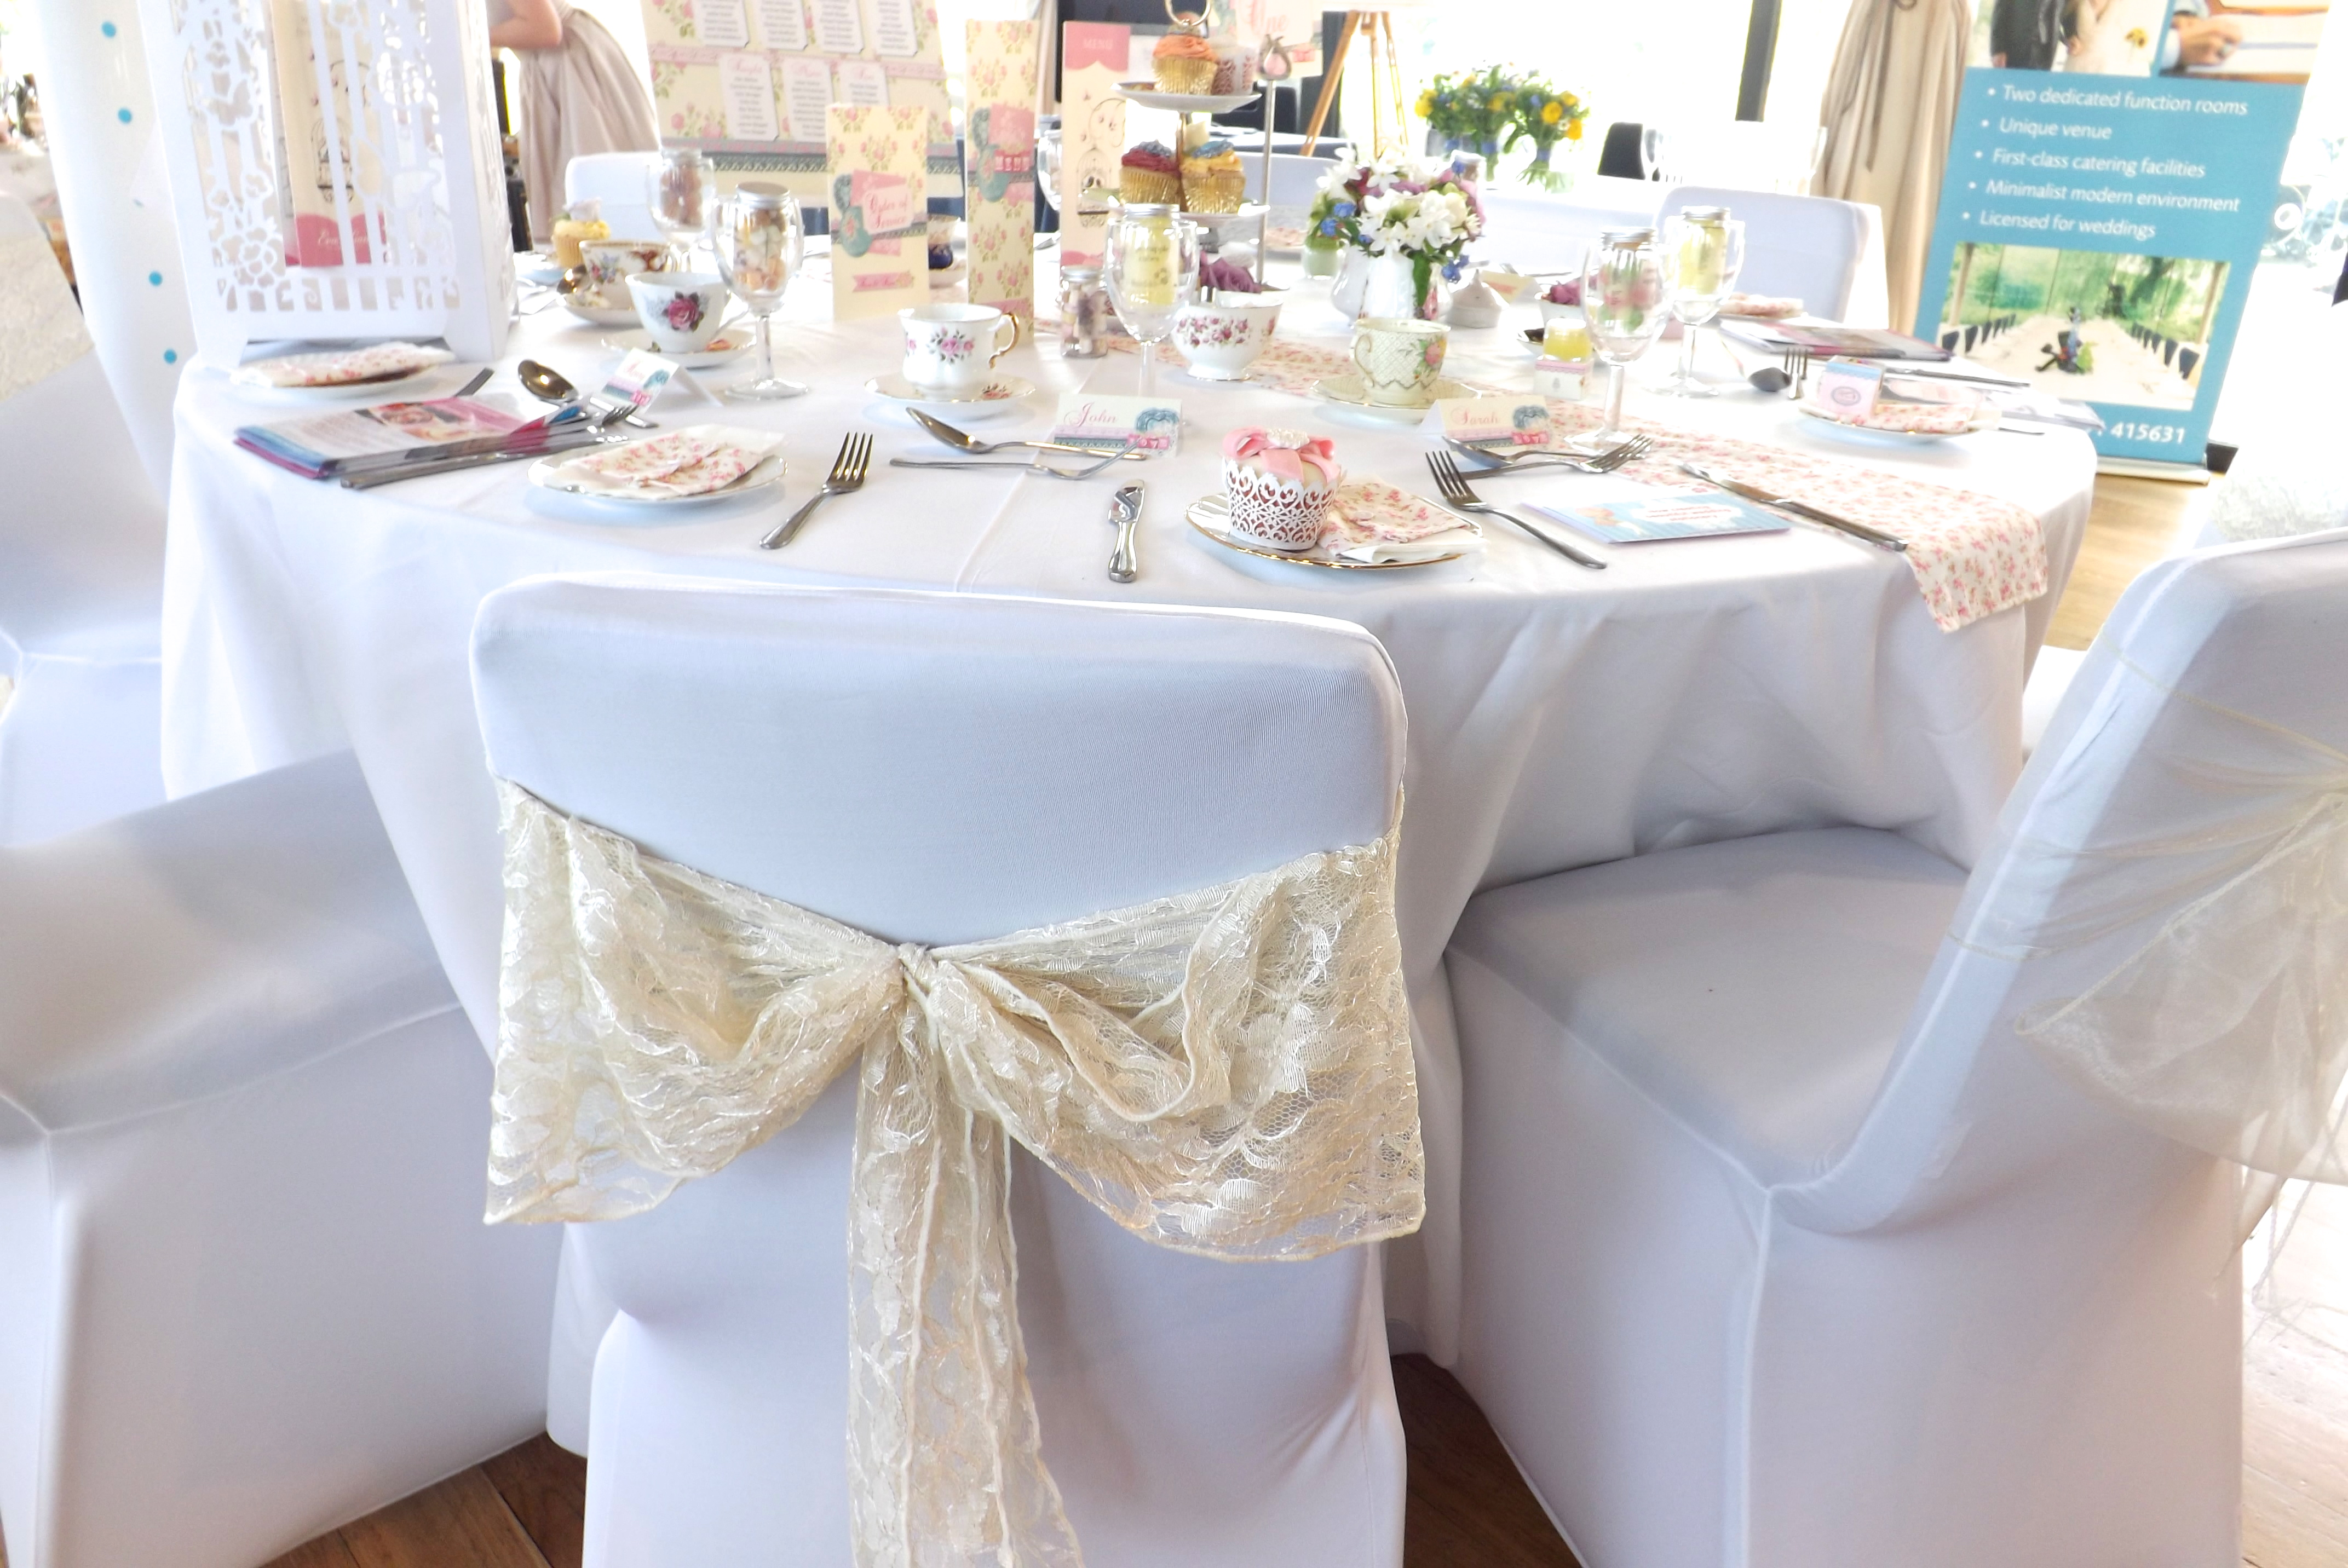 cream chair covers for weddings double saucer black wedding party trends fuschiadesigns vintage lace bows in ivory add that special final touch to any celebration